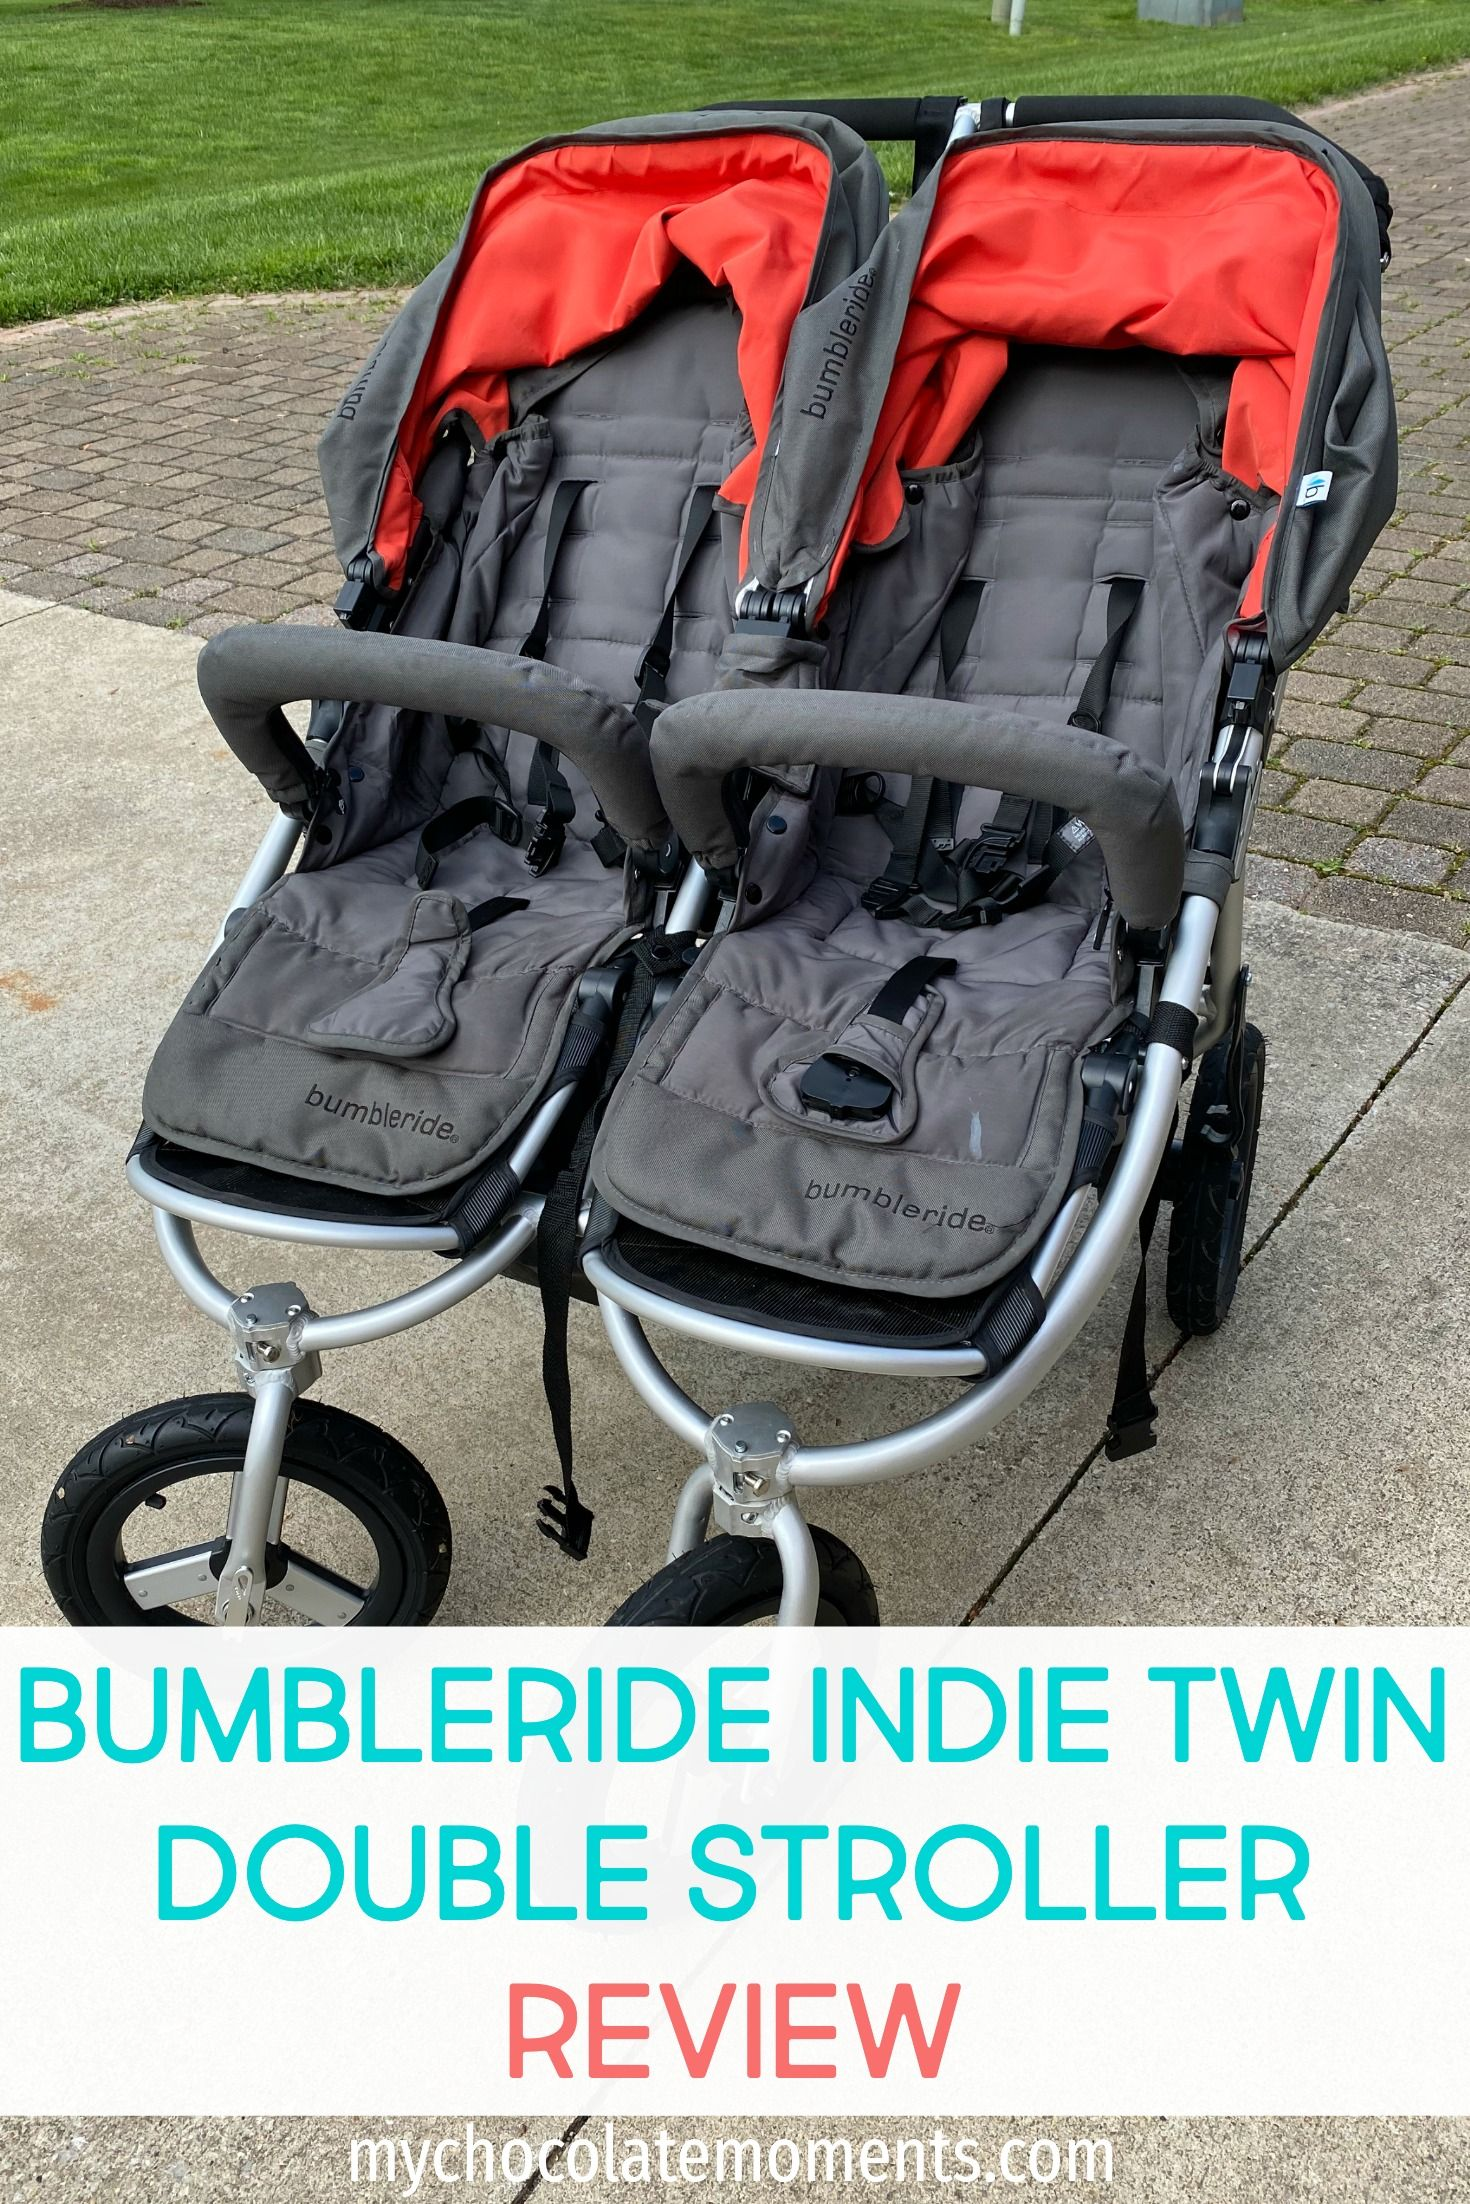 Bumbleride Indie Twin Double Stroller Review in 2020